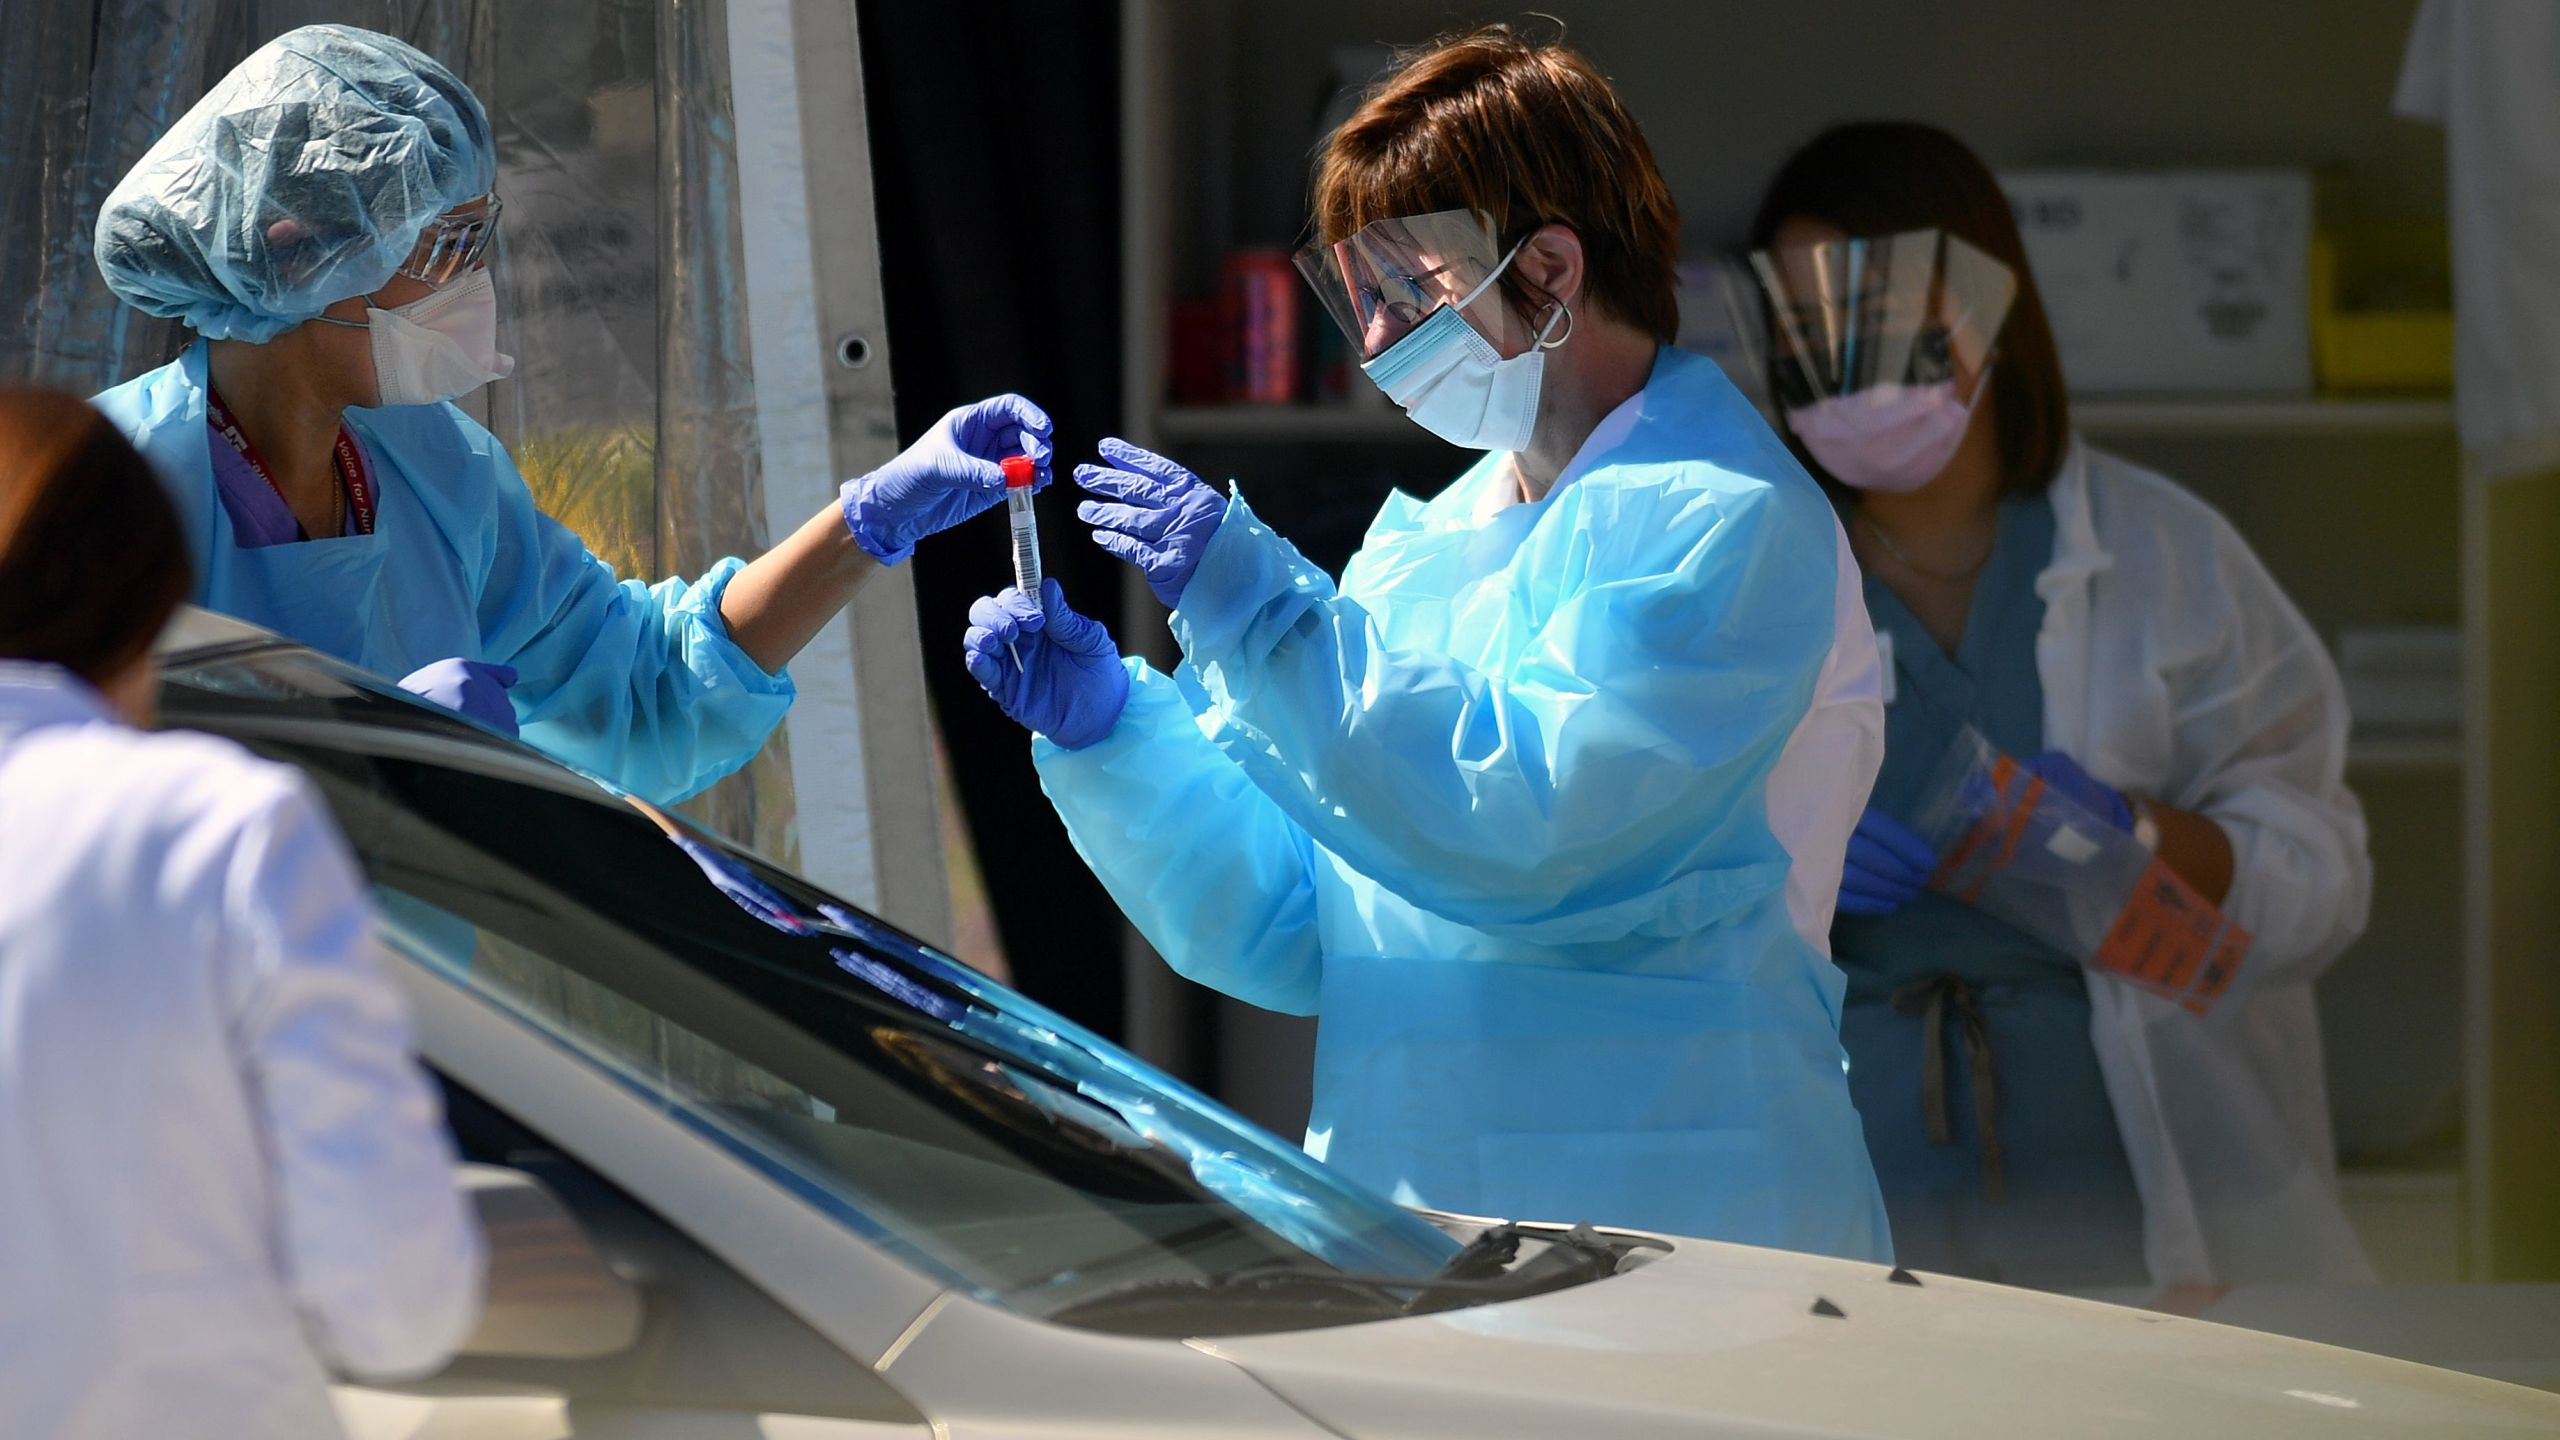 Medical workers at a Kaiser Permanente French Campus test a patient for the novel coronavirus, COVID-19, at a drive-thru testing facility in San Francisco on March 12, 2020. (JOSH EDELSON/AFP via Getty Images)